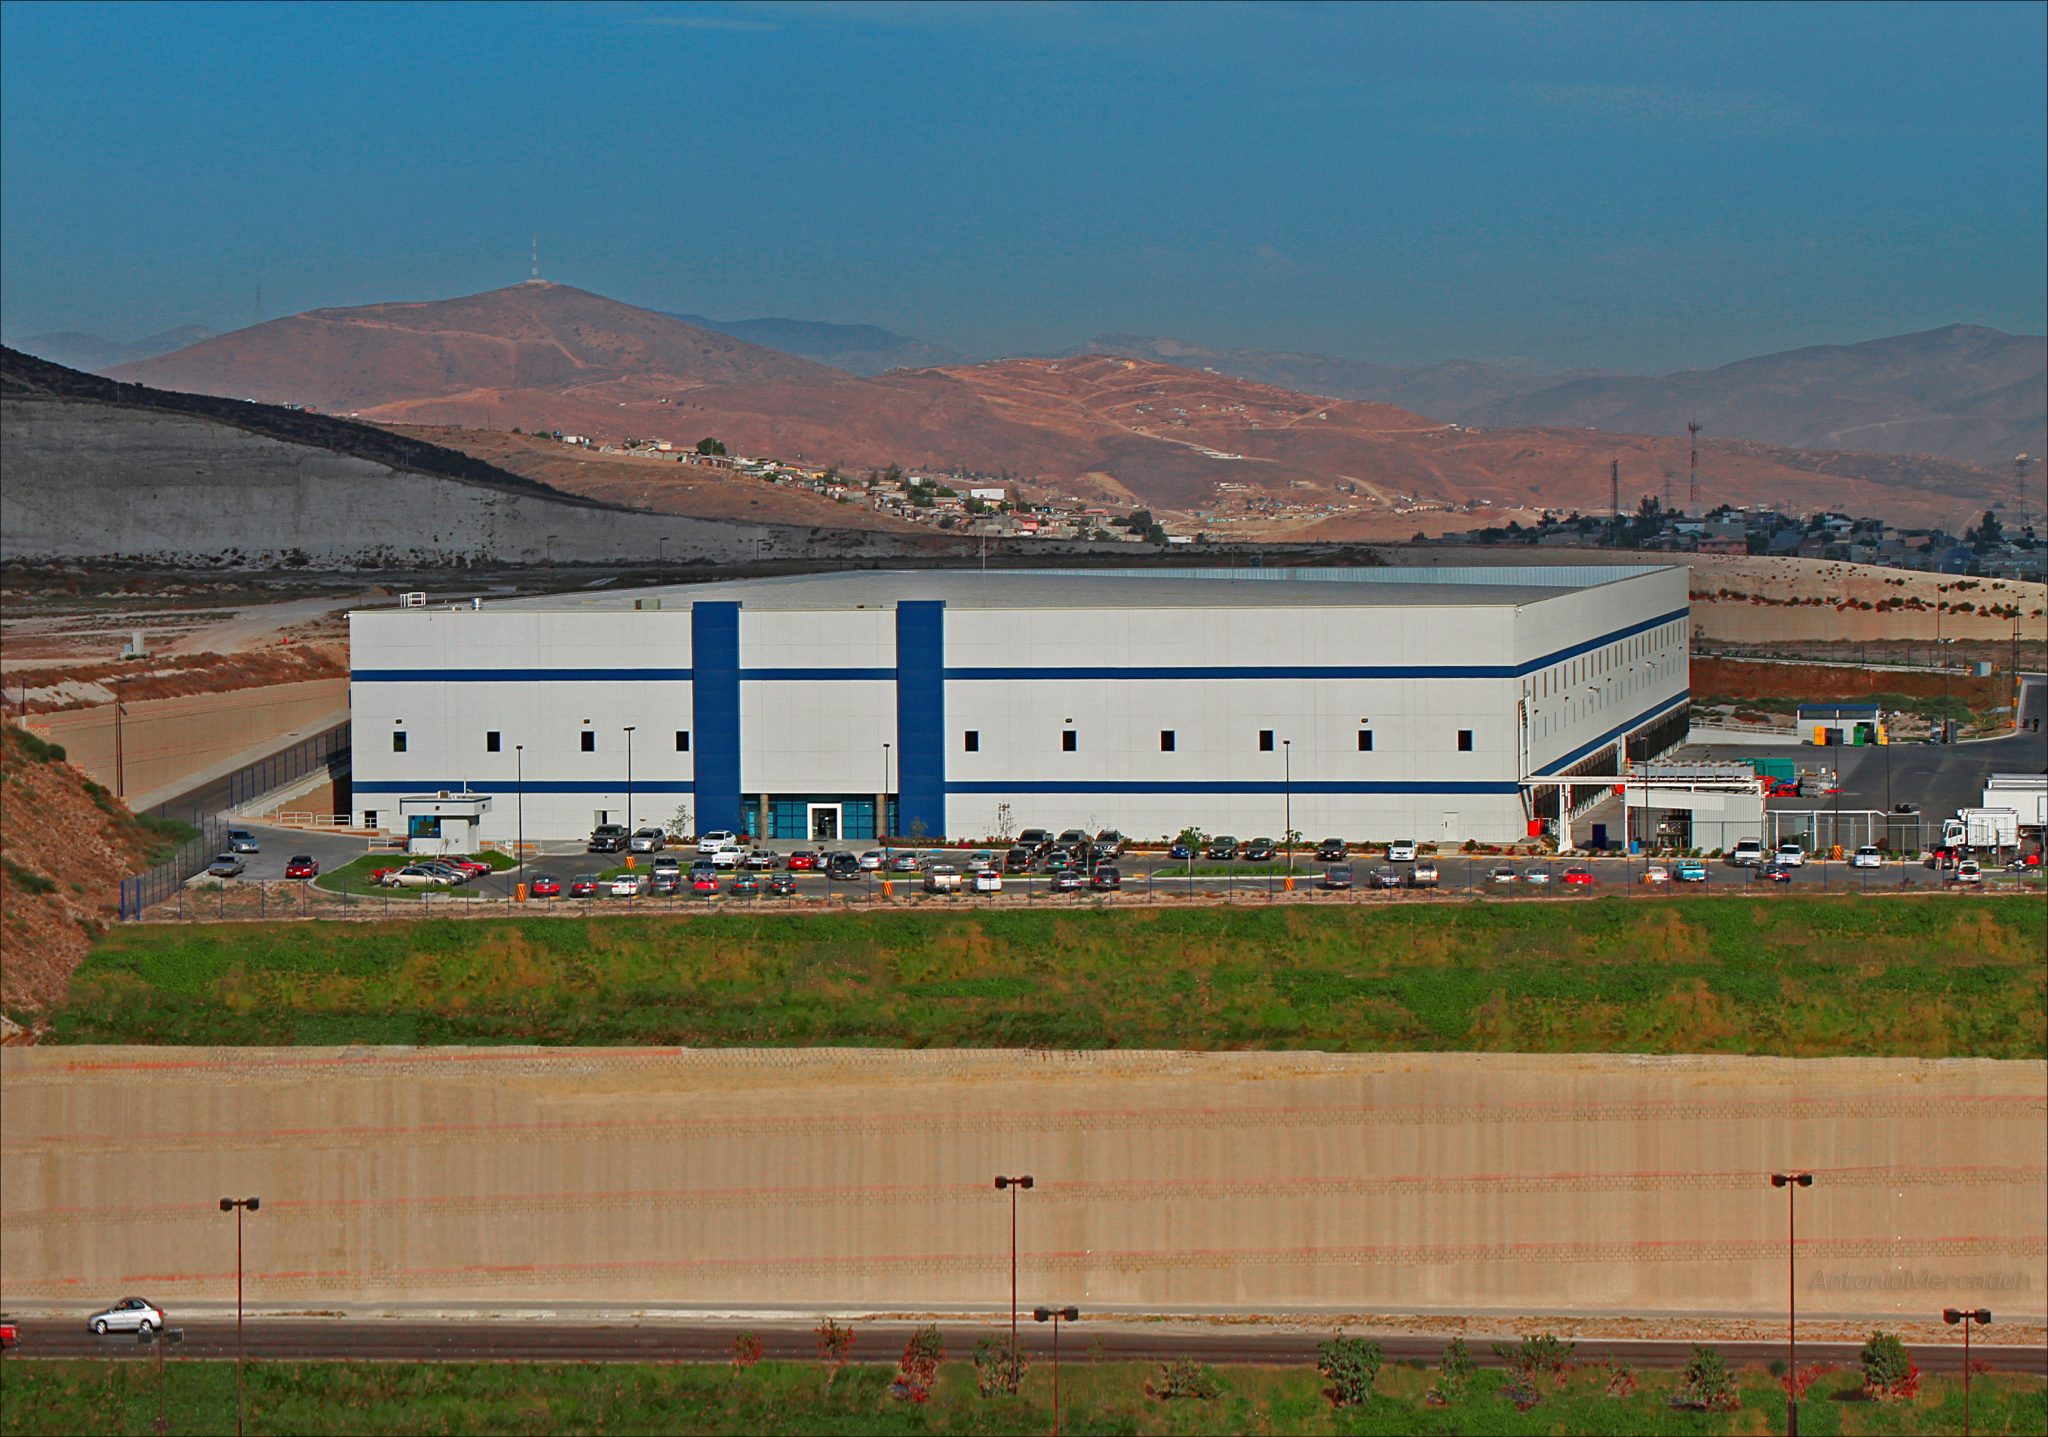 Panoramic shot of OXXO Distribution Center in Tijuana, Baja California